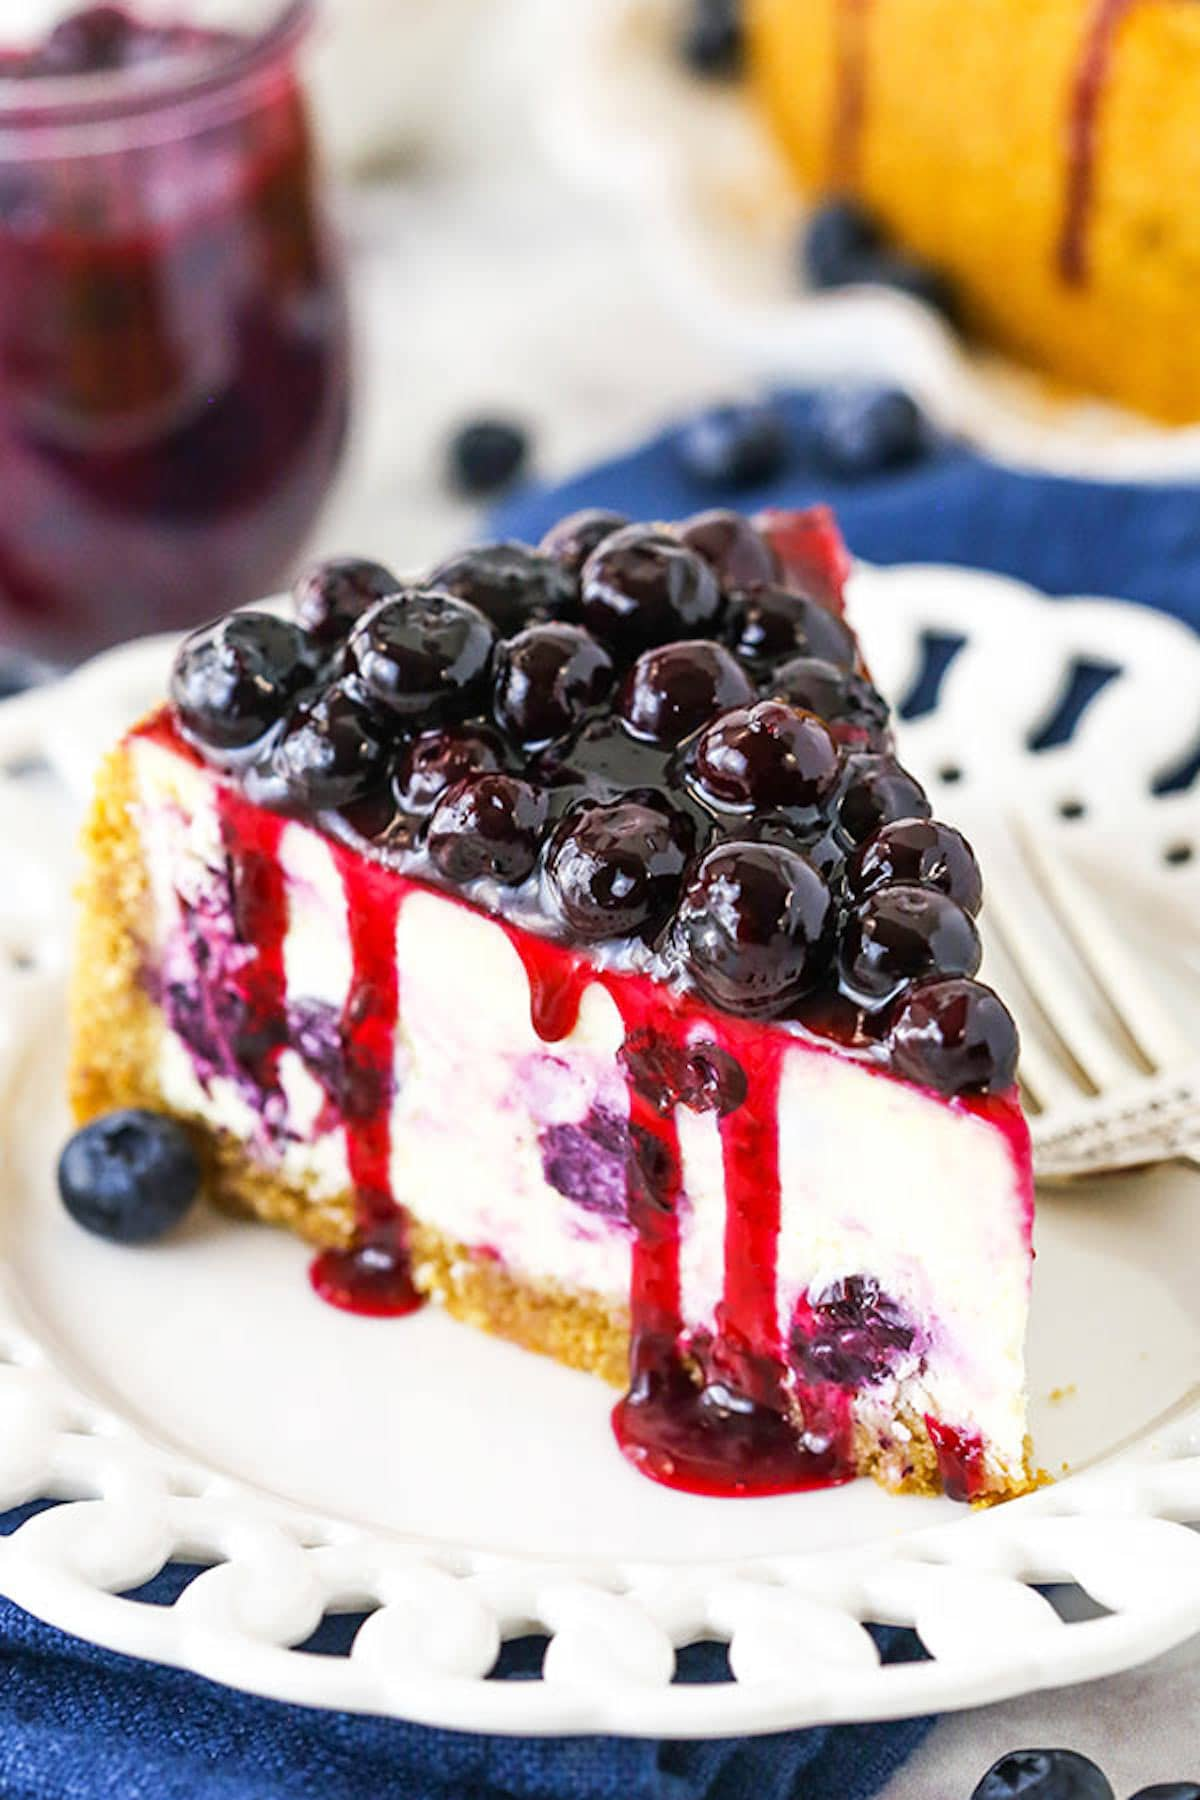 A Close-Up Shot of a Slice of Baked Blueberry Cheesecake with Blueberry Sauce on Top